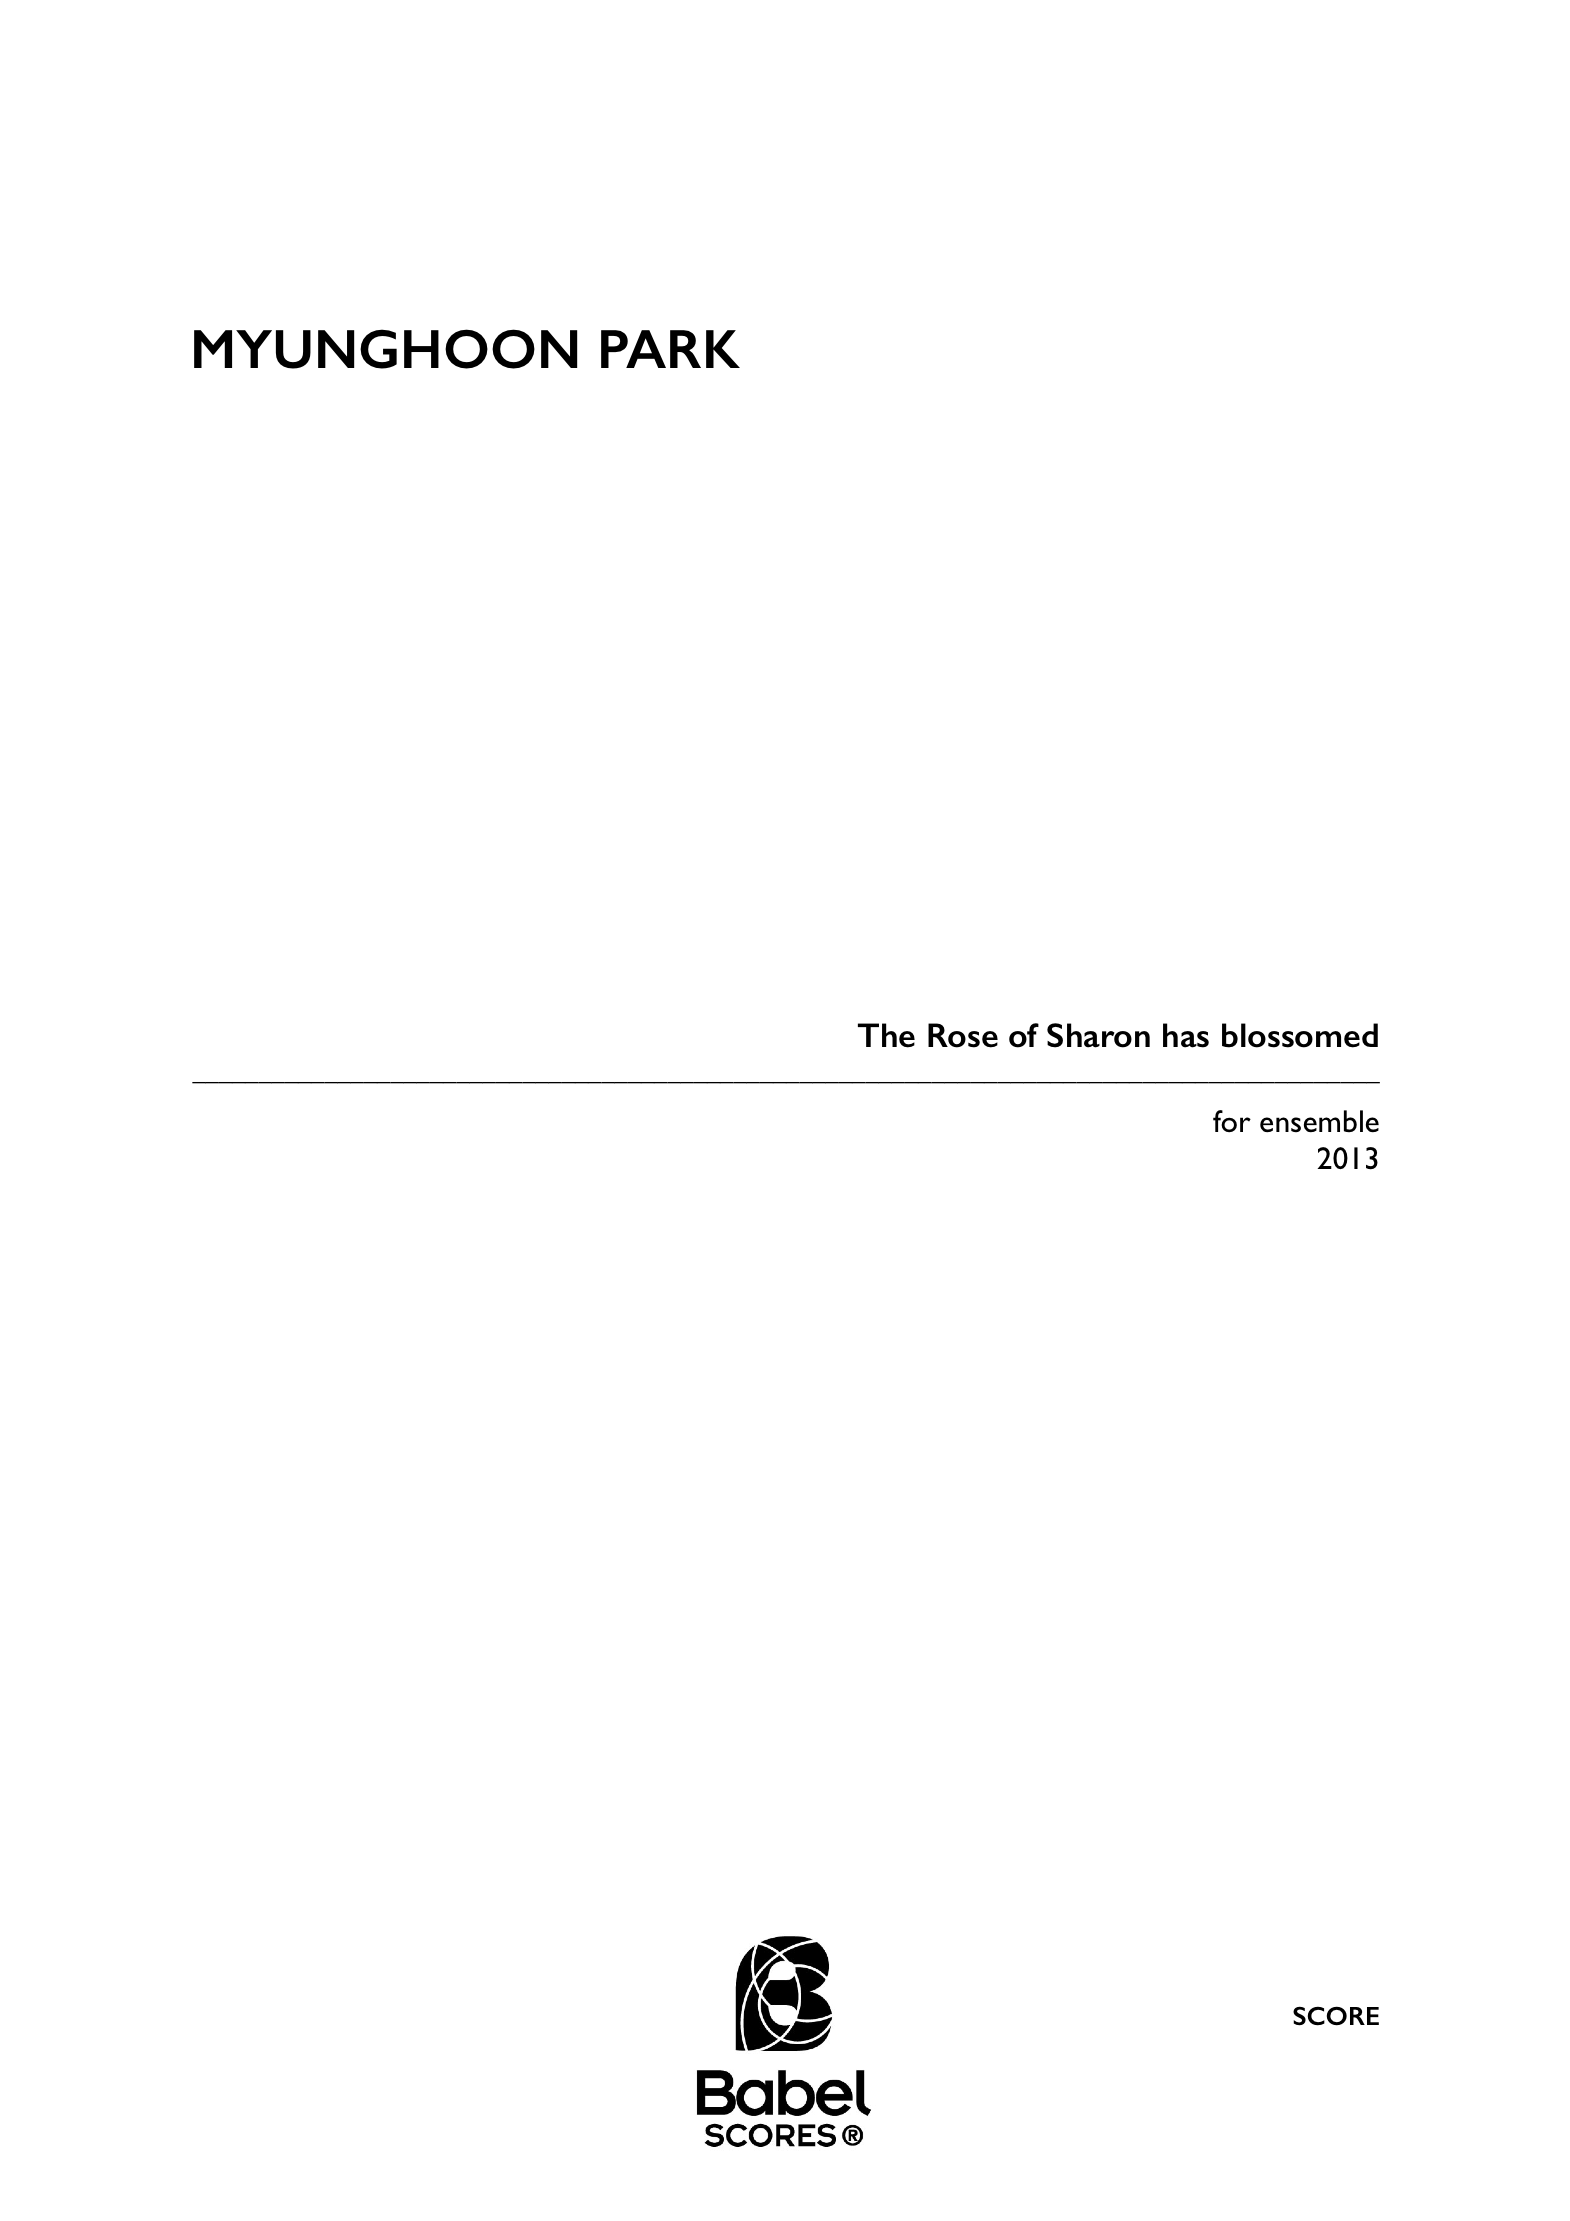 Score the rose of sharon has blossomed for ensemble Myunghoon Park A4 z